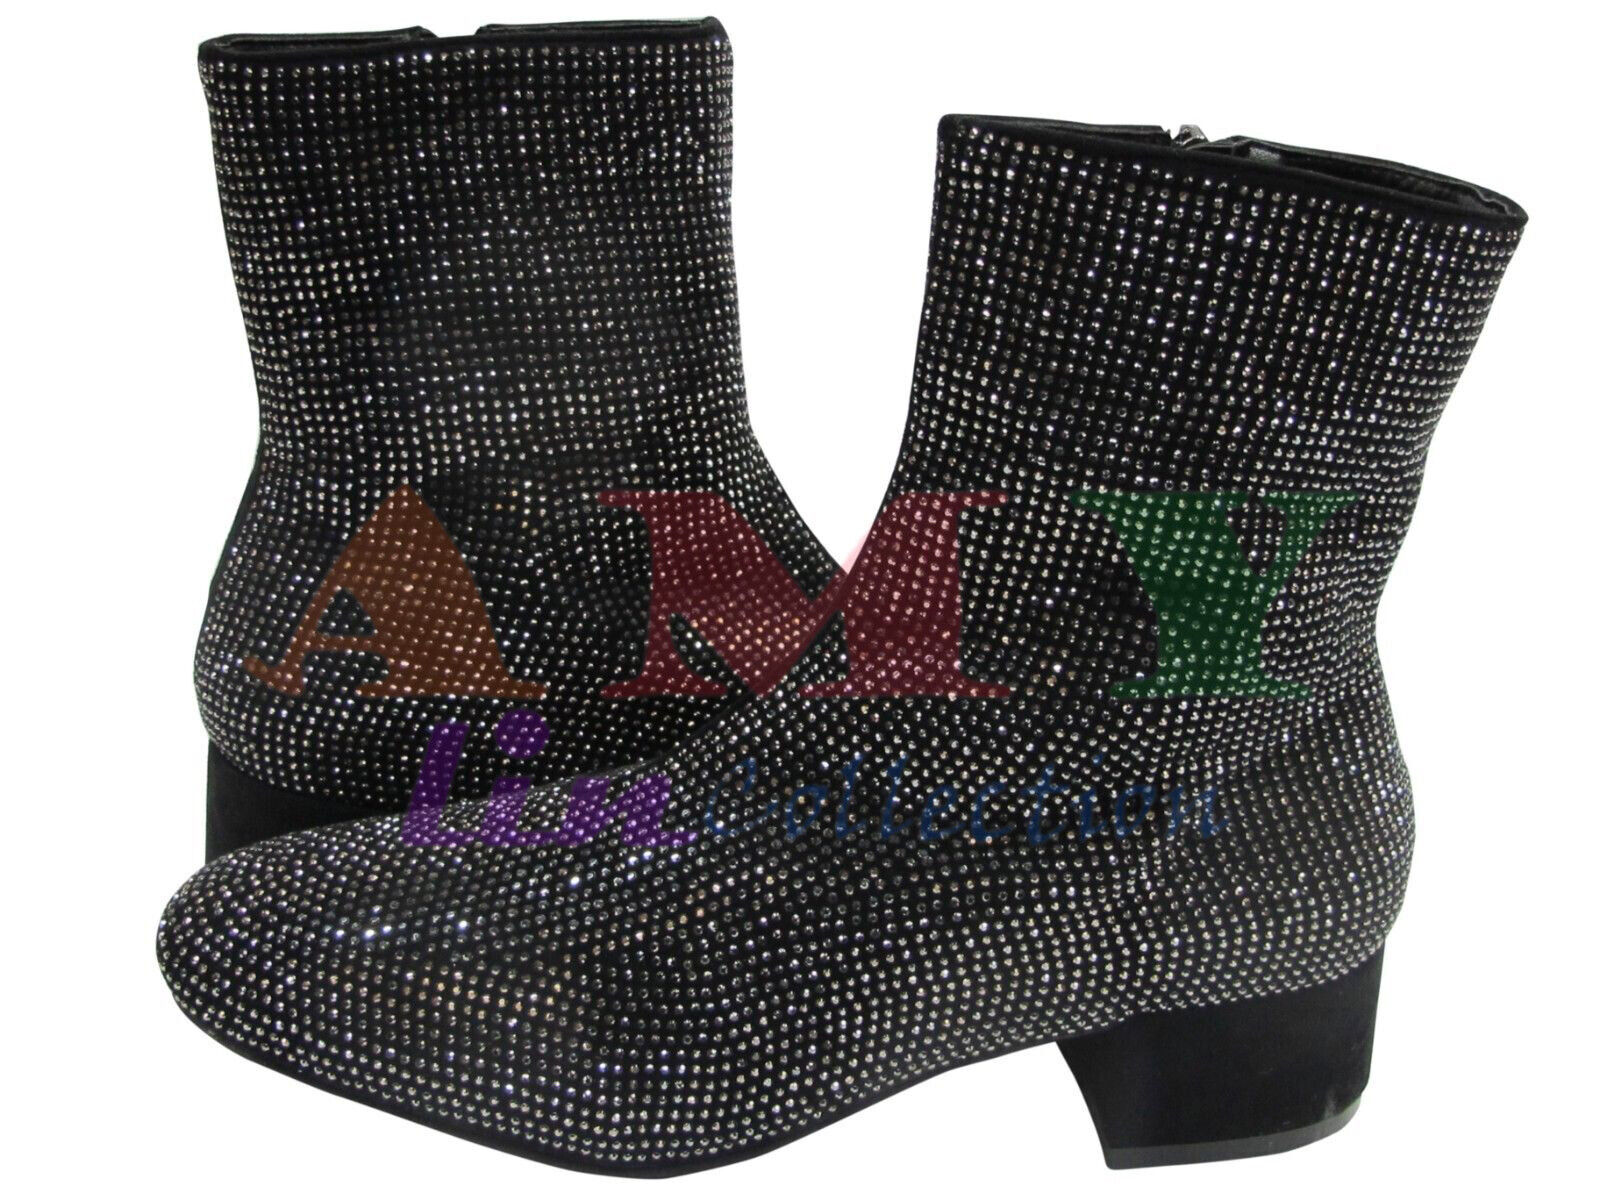 Black Ankle Boots/Booties Casual Faux Leather Rhinestone Syn